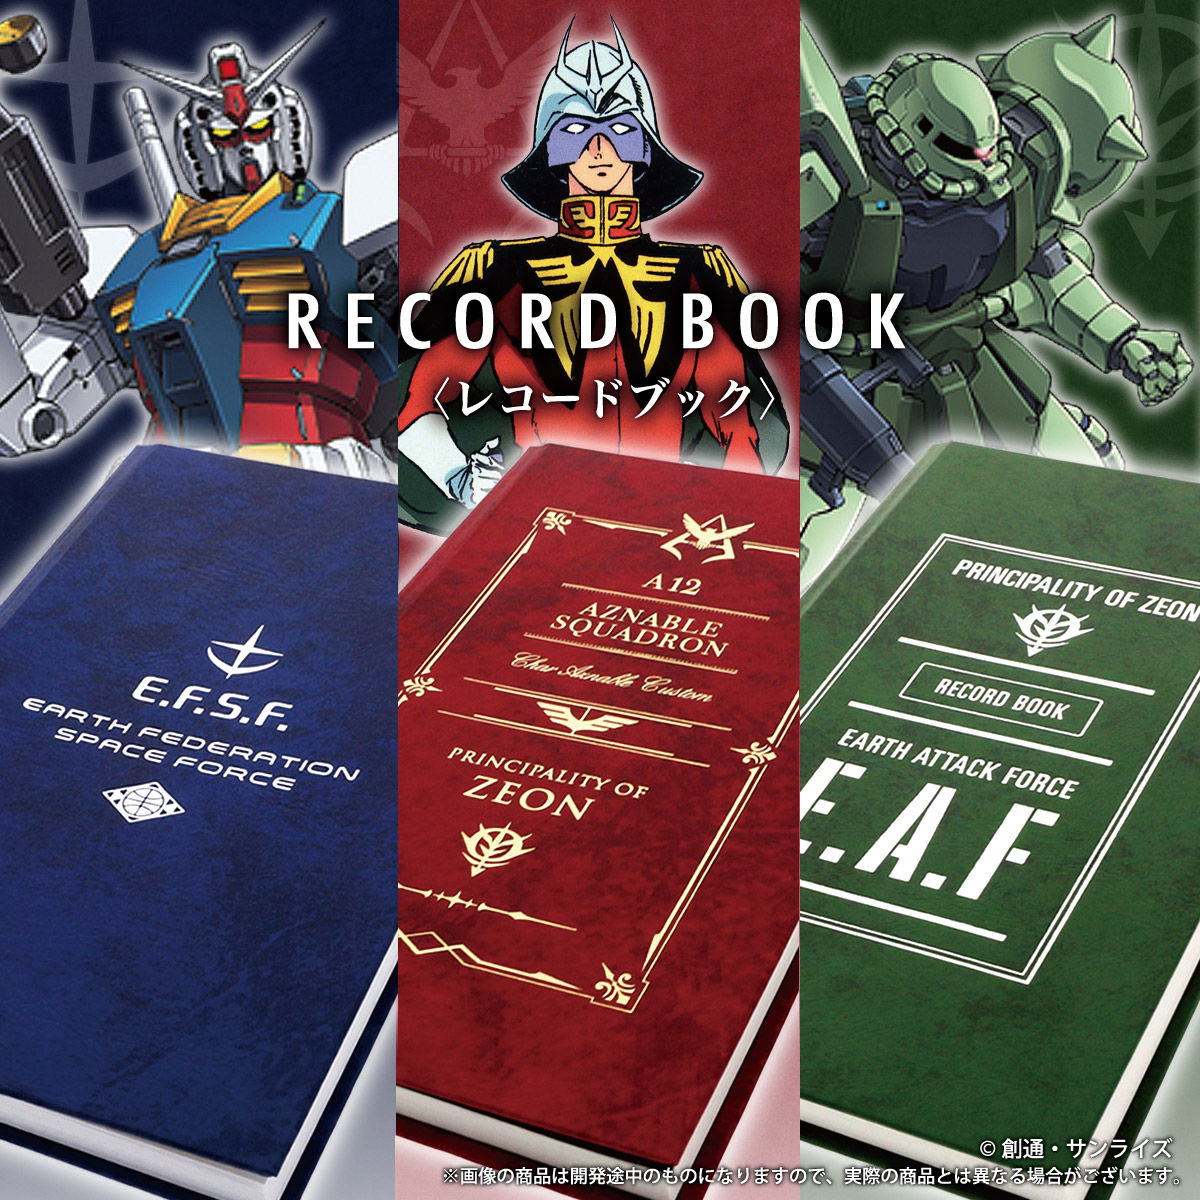 P-Bandai Mobile Suit Gundam Record Book (notebook) (all three types) No.14 images, info